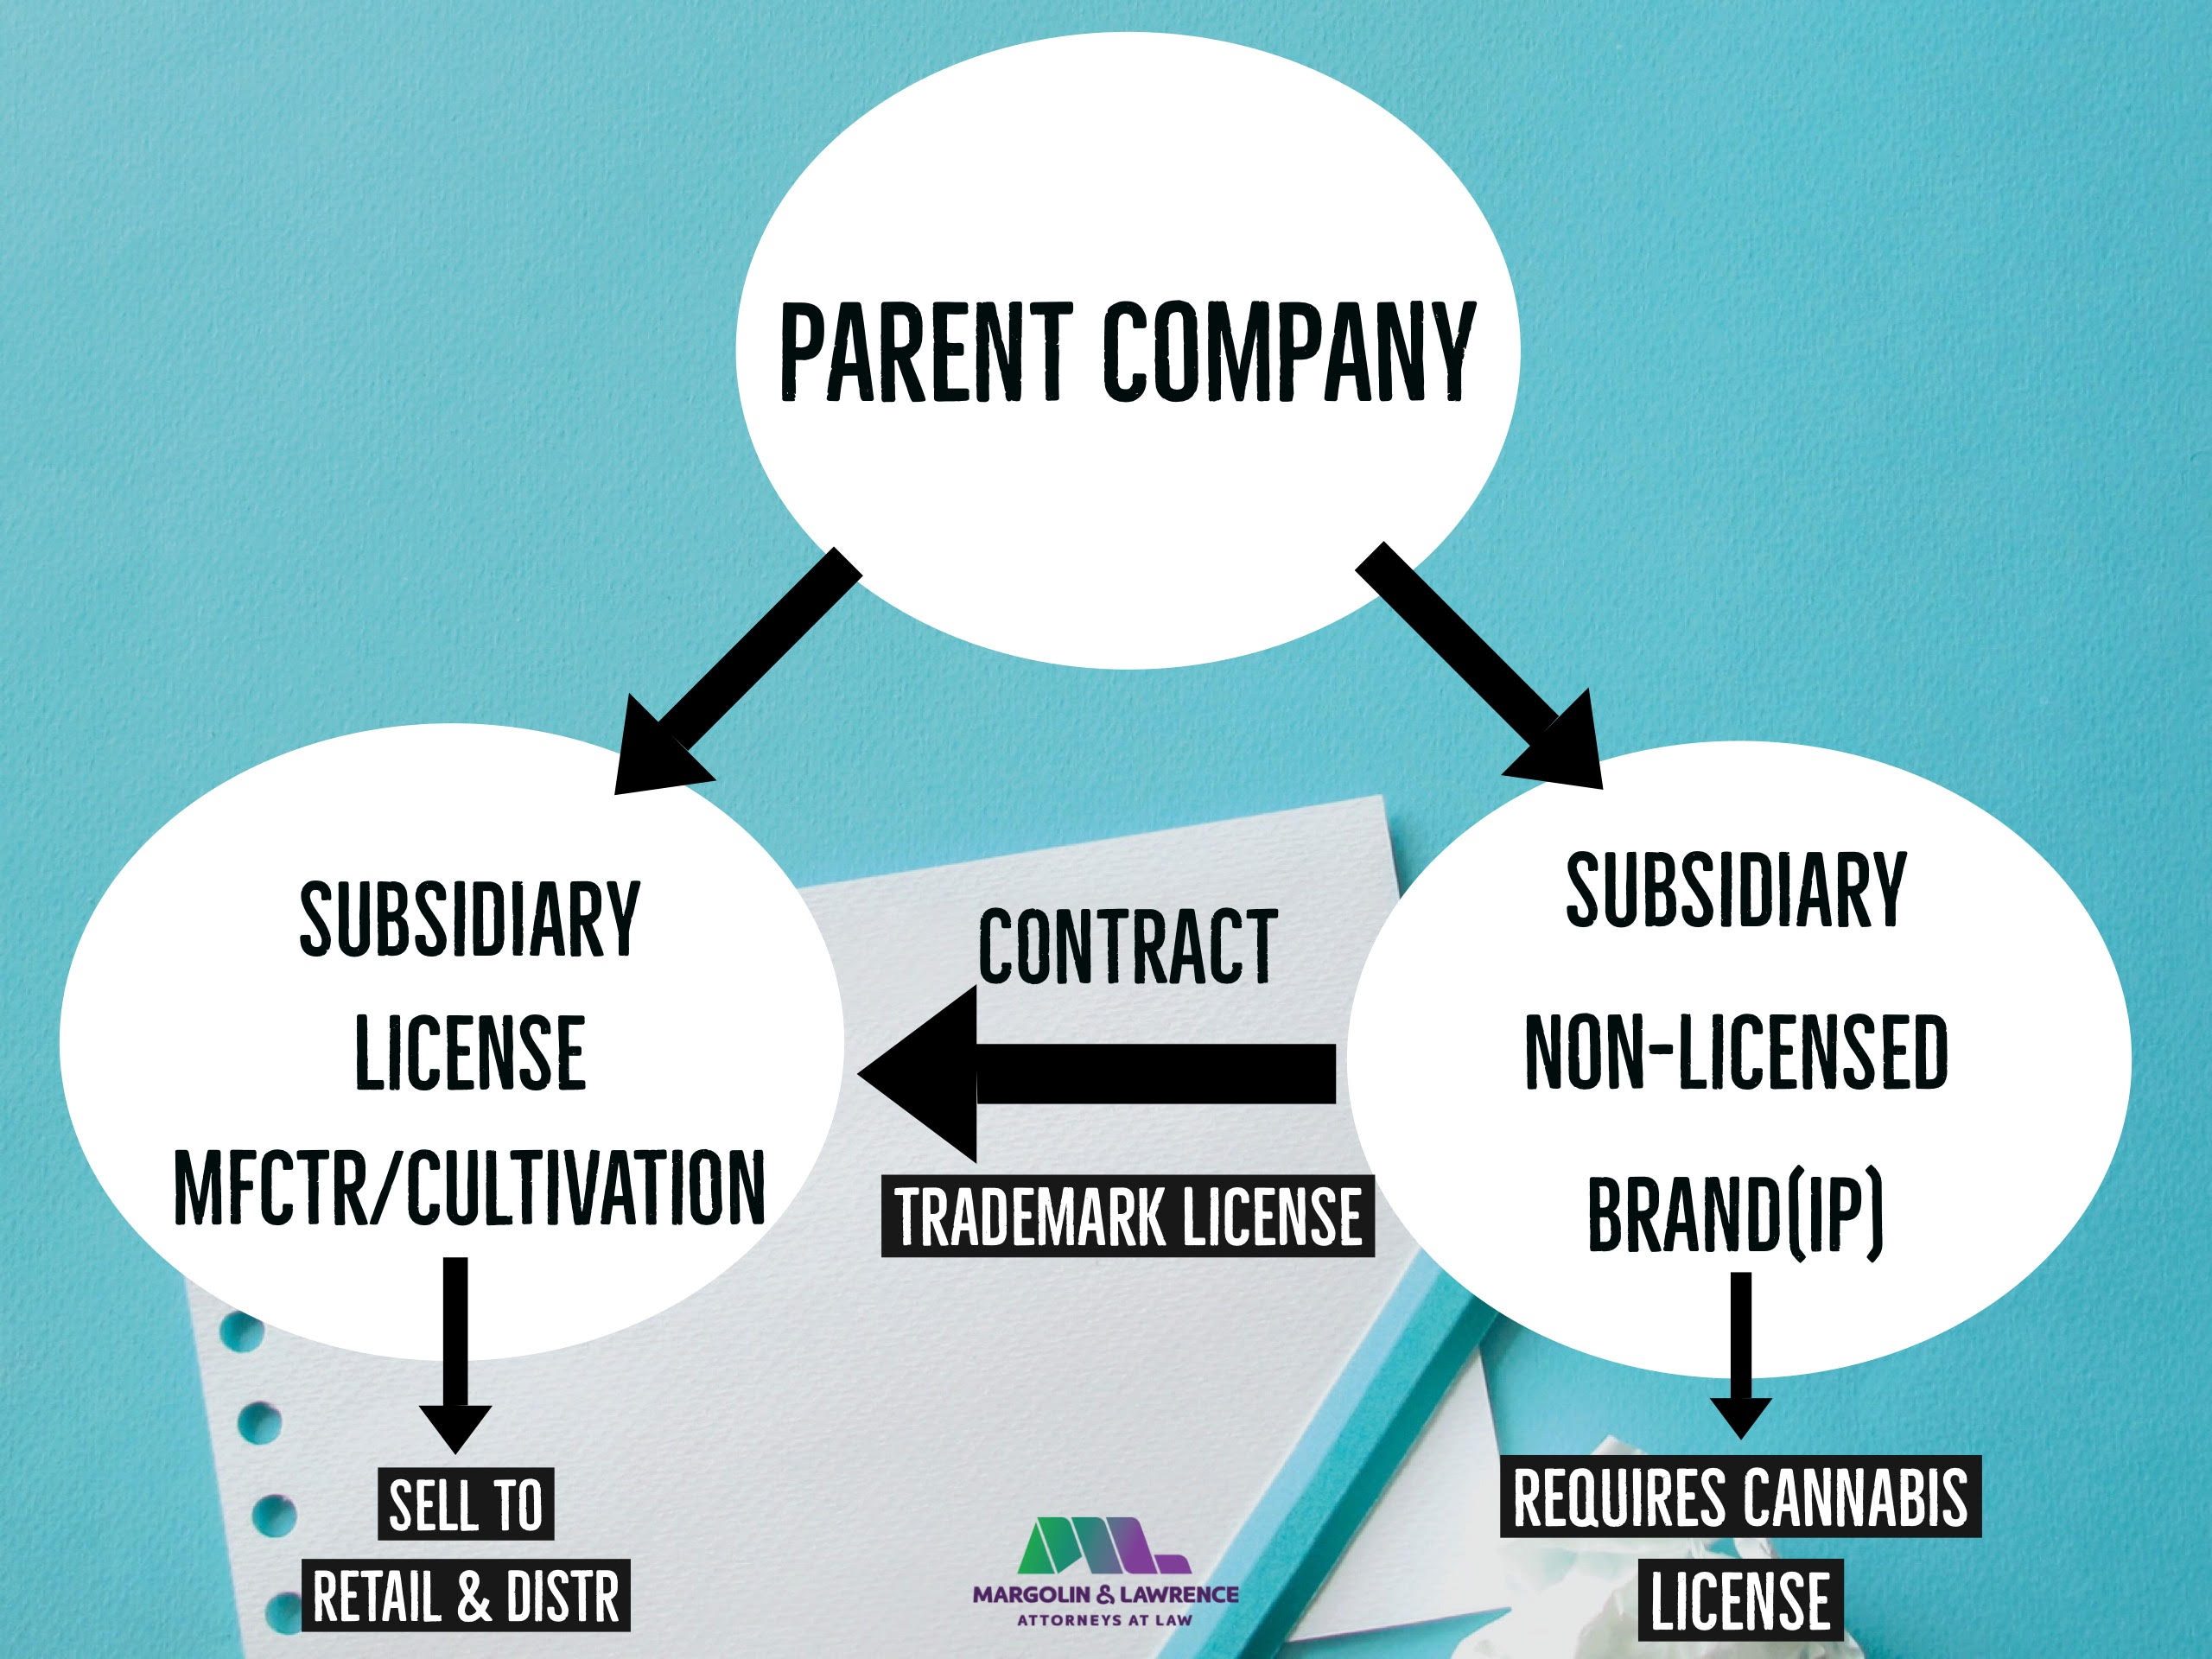 Trademark Licensing in the Cannabis Space